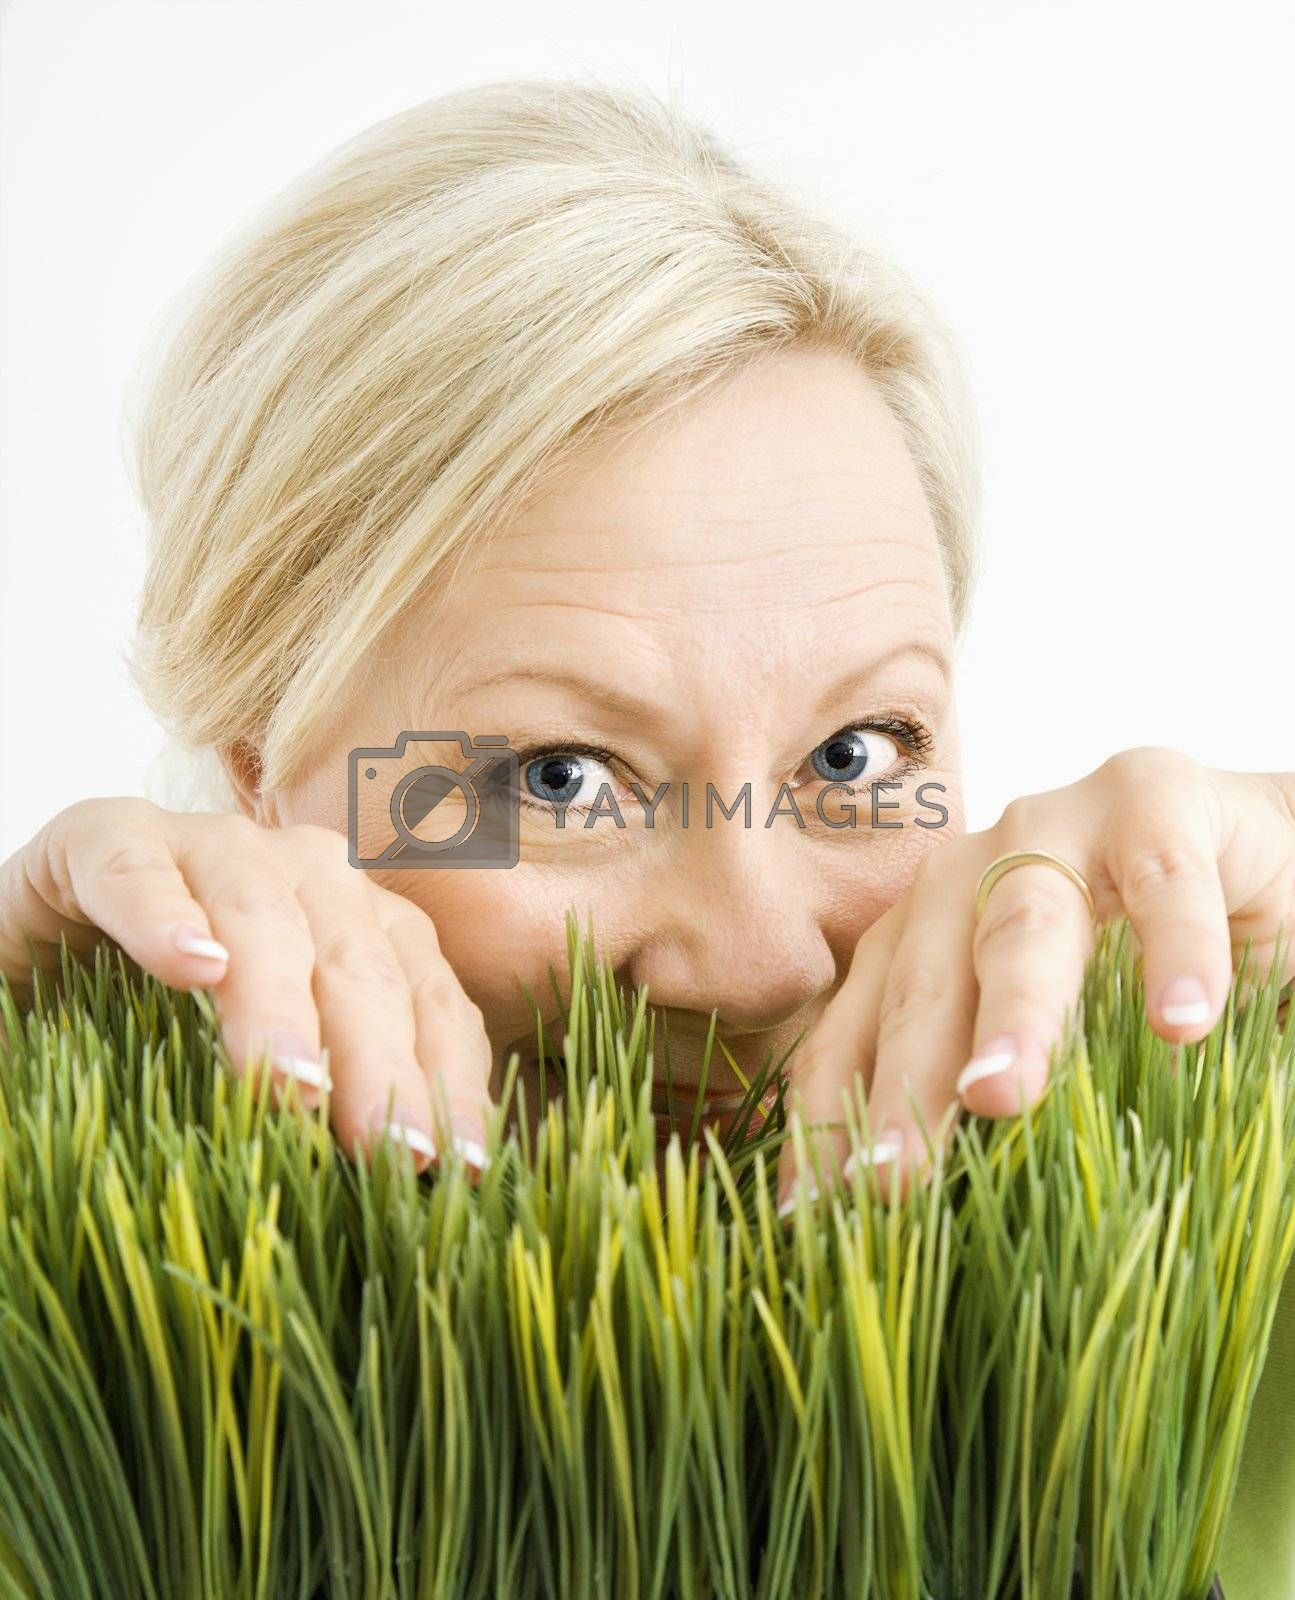 Portrait of adult blonde woman looking through grass at viewer.